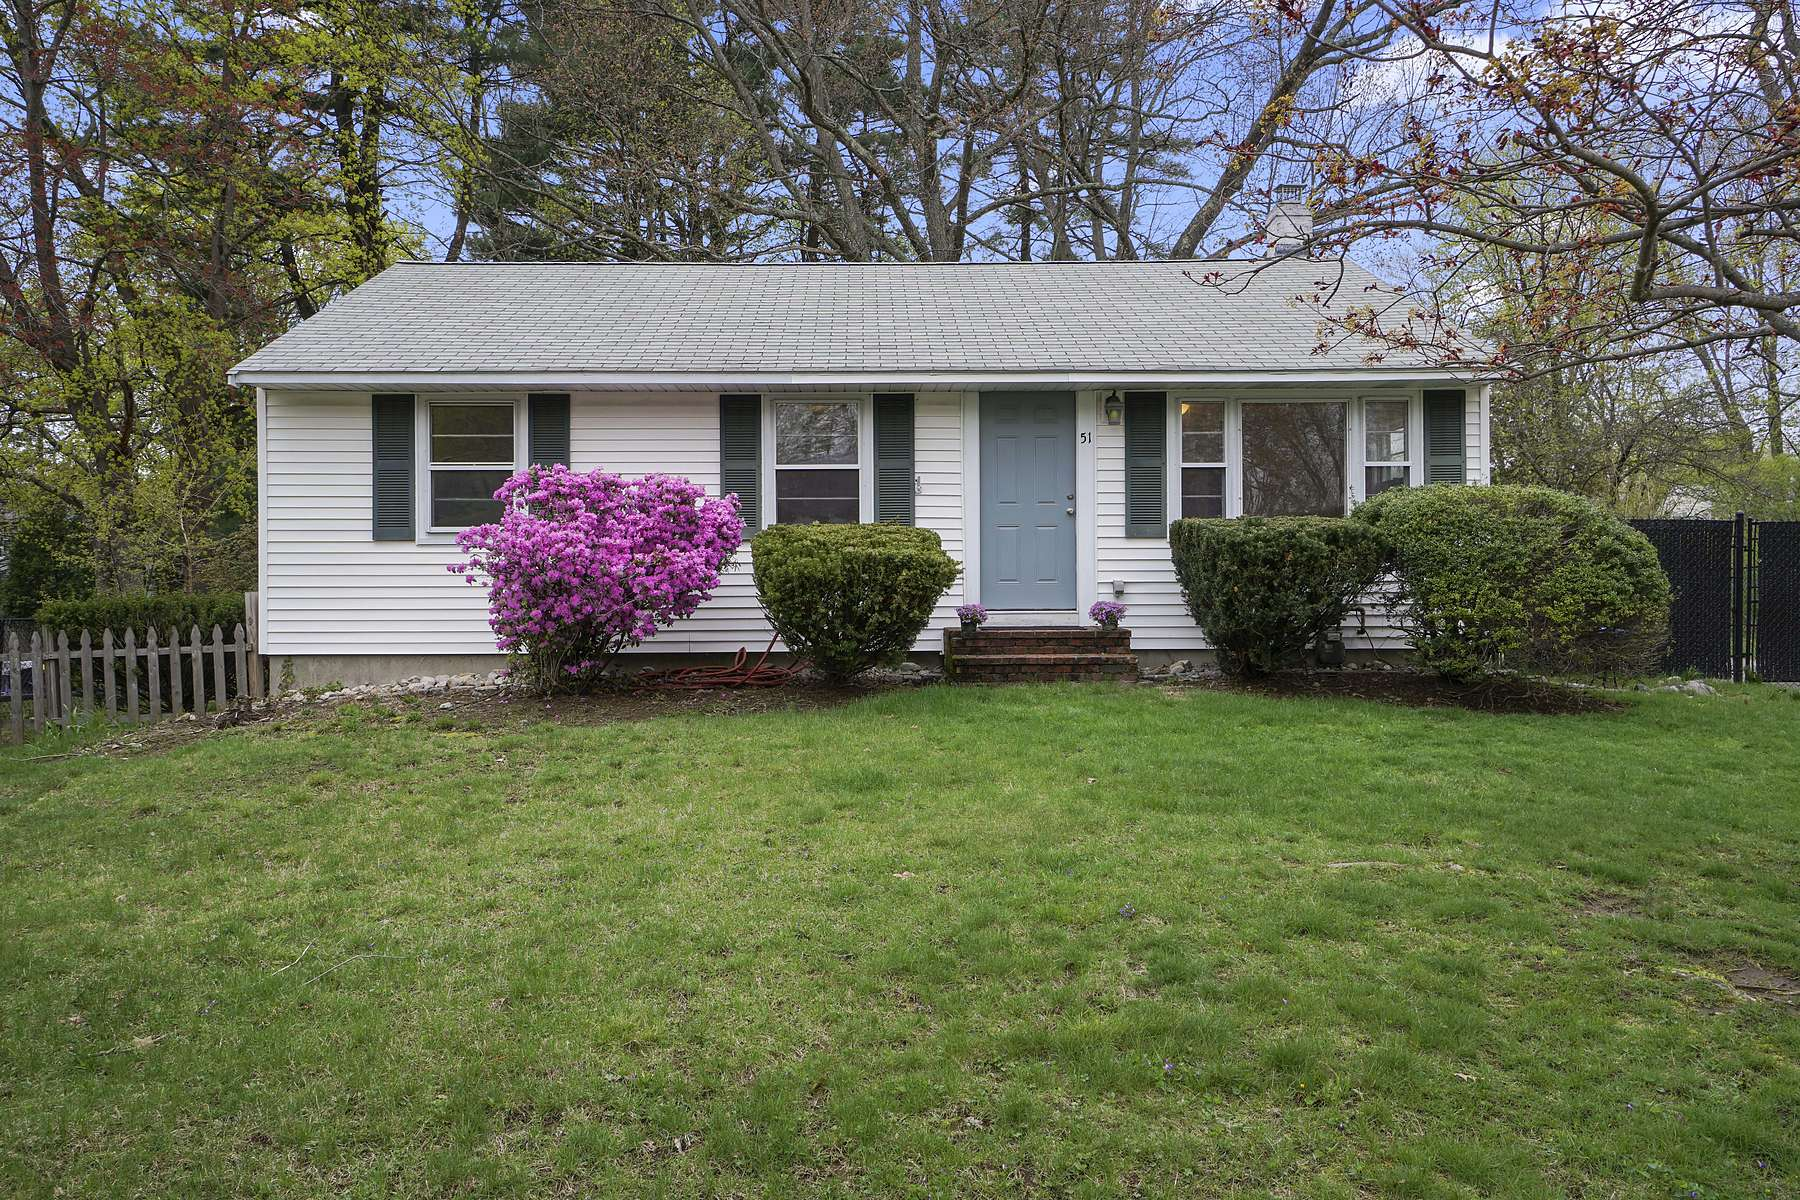 Single Family Home for Active at 51 Coolidge Road 51 Coolidge Rd Walpole, Massachusetts 02081 United States